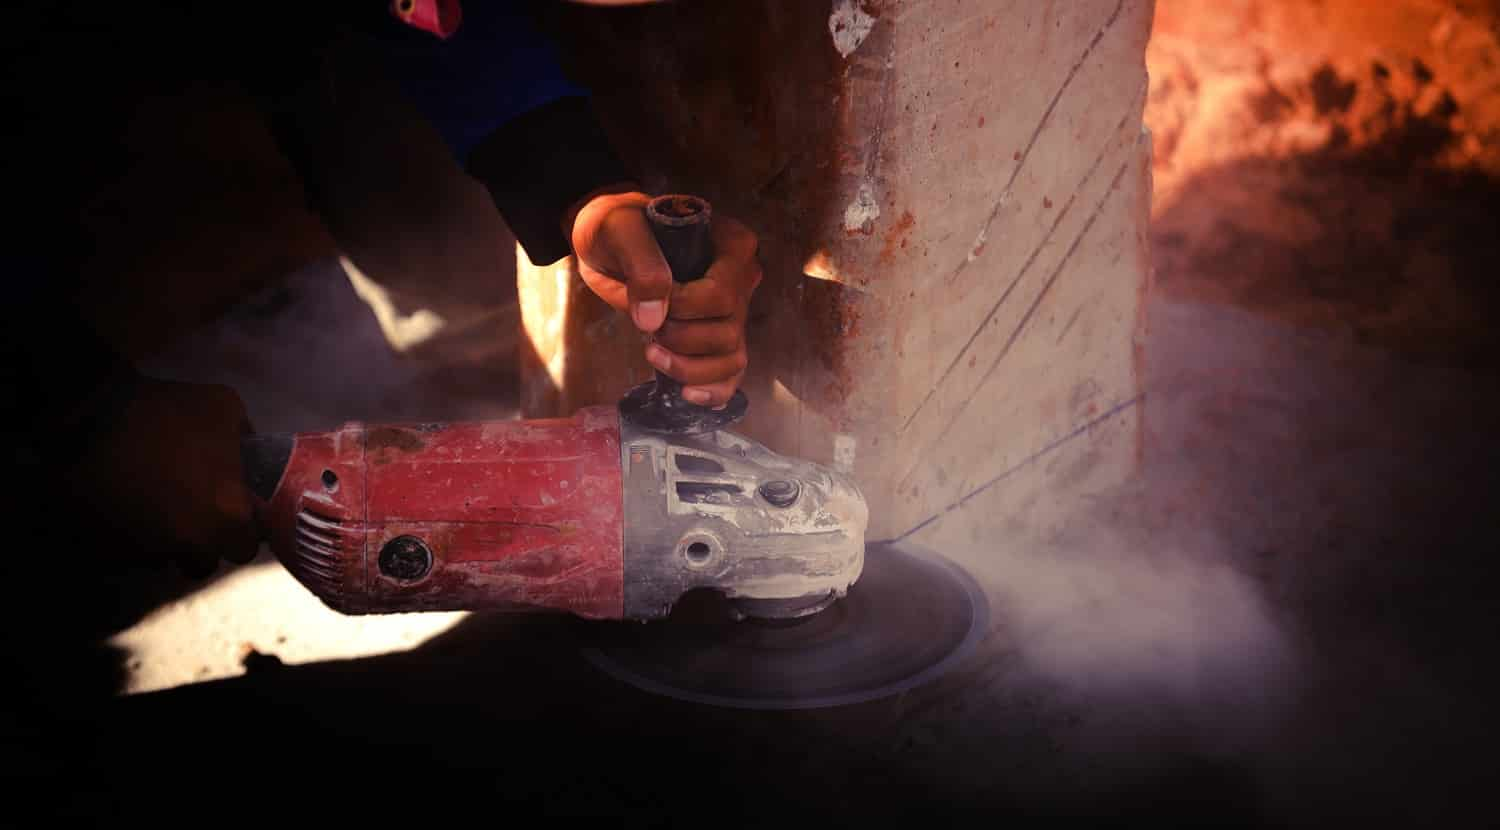 Industry construction labor men worker holding electric saw cuting concrete